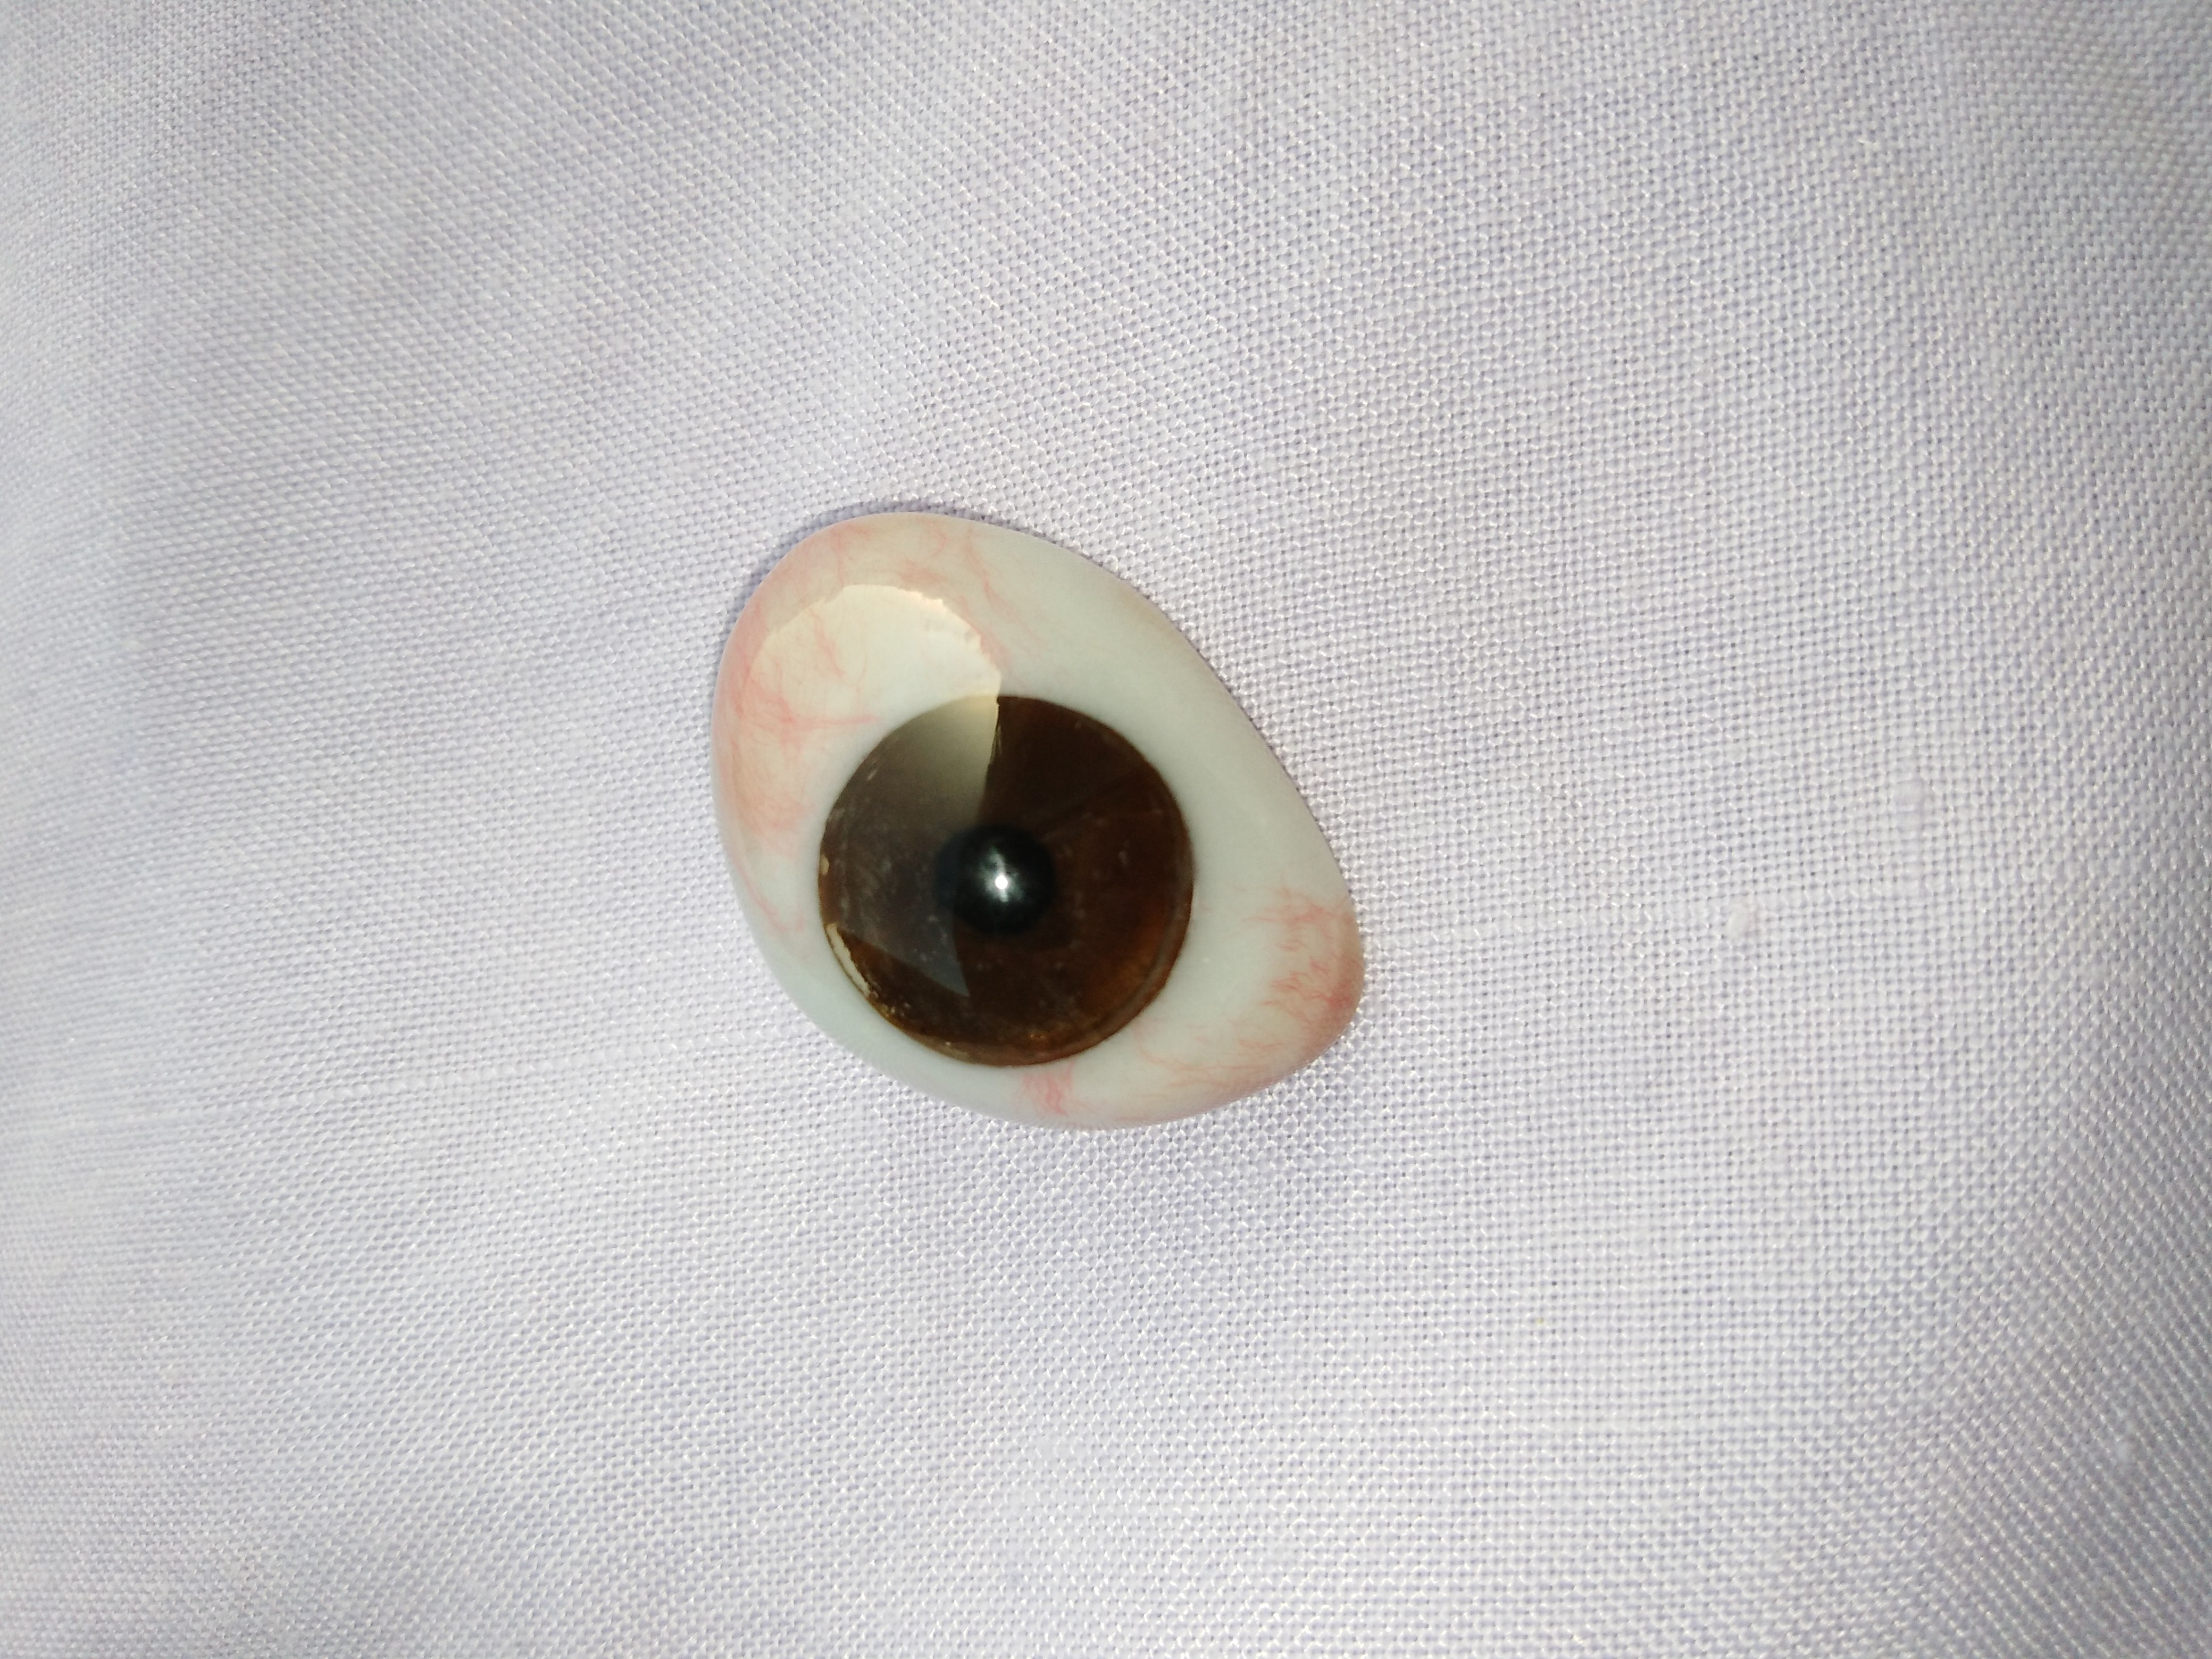 Ocular prosthetic - The complete information and online sale with